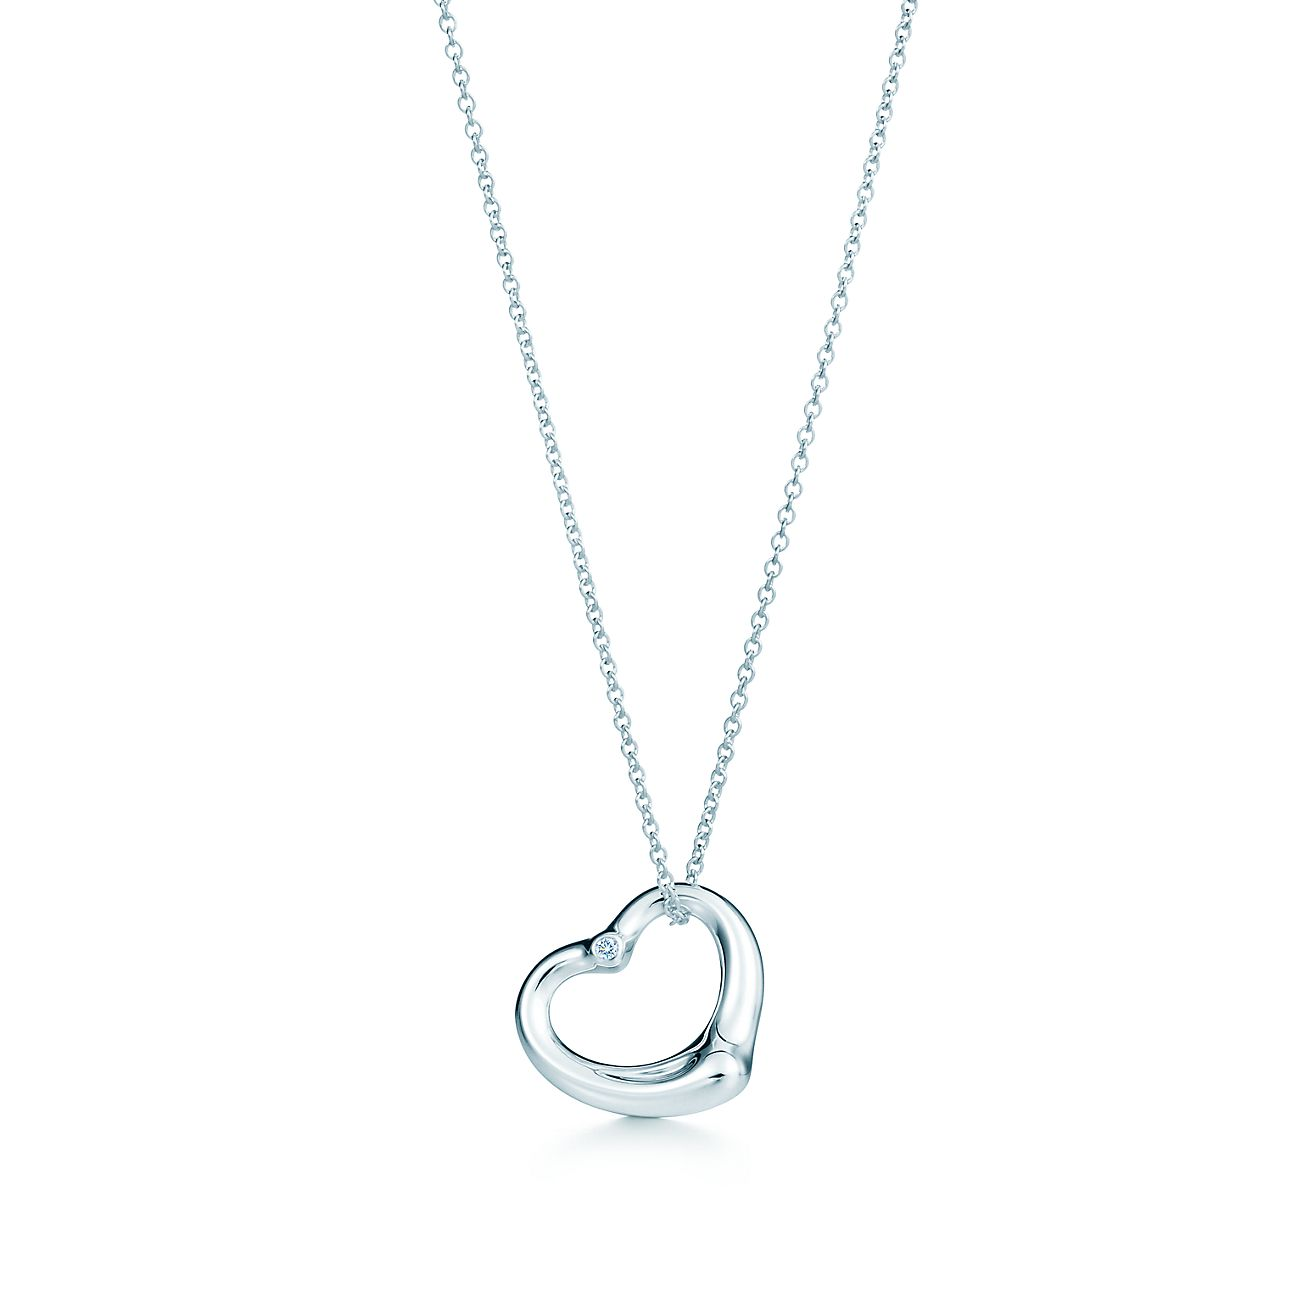 Elsa Peretti Open Heart pendant in sterling silver - Size 22 mm Tiffany & Co.